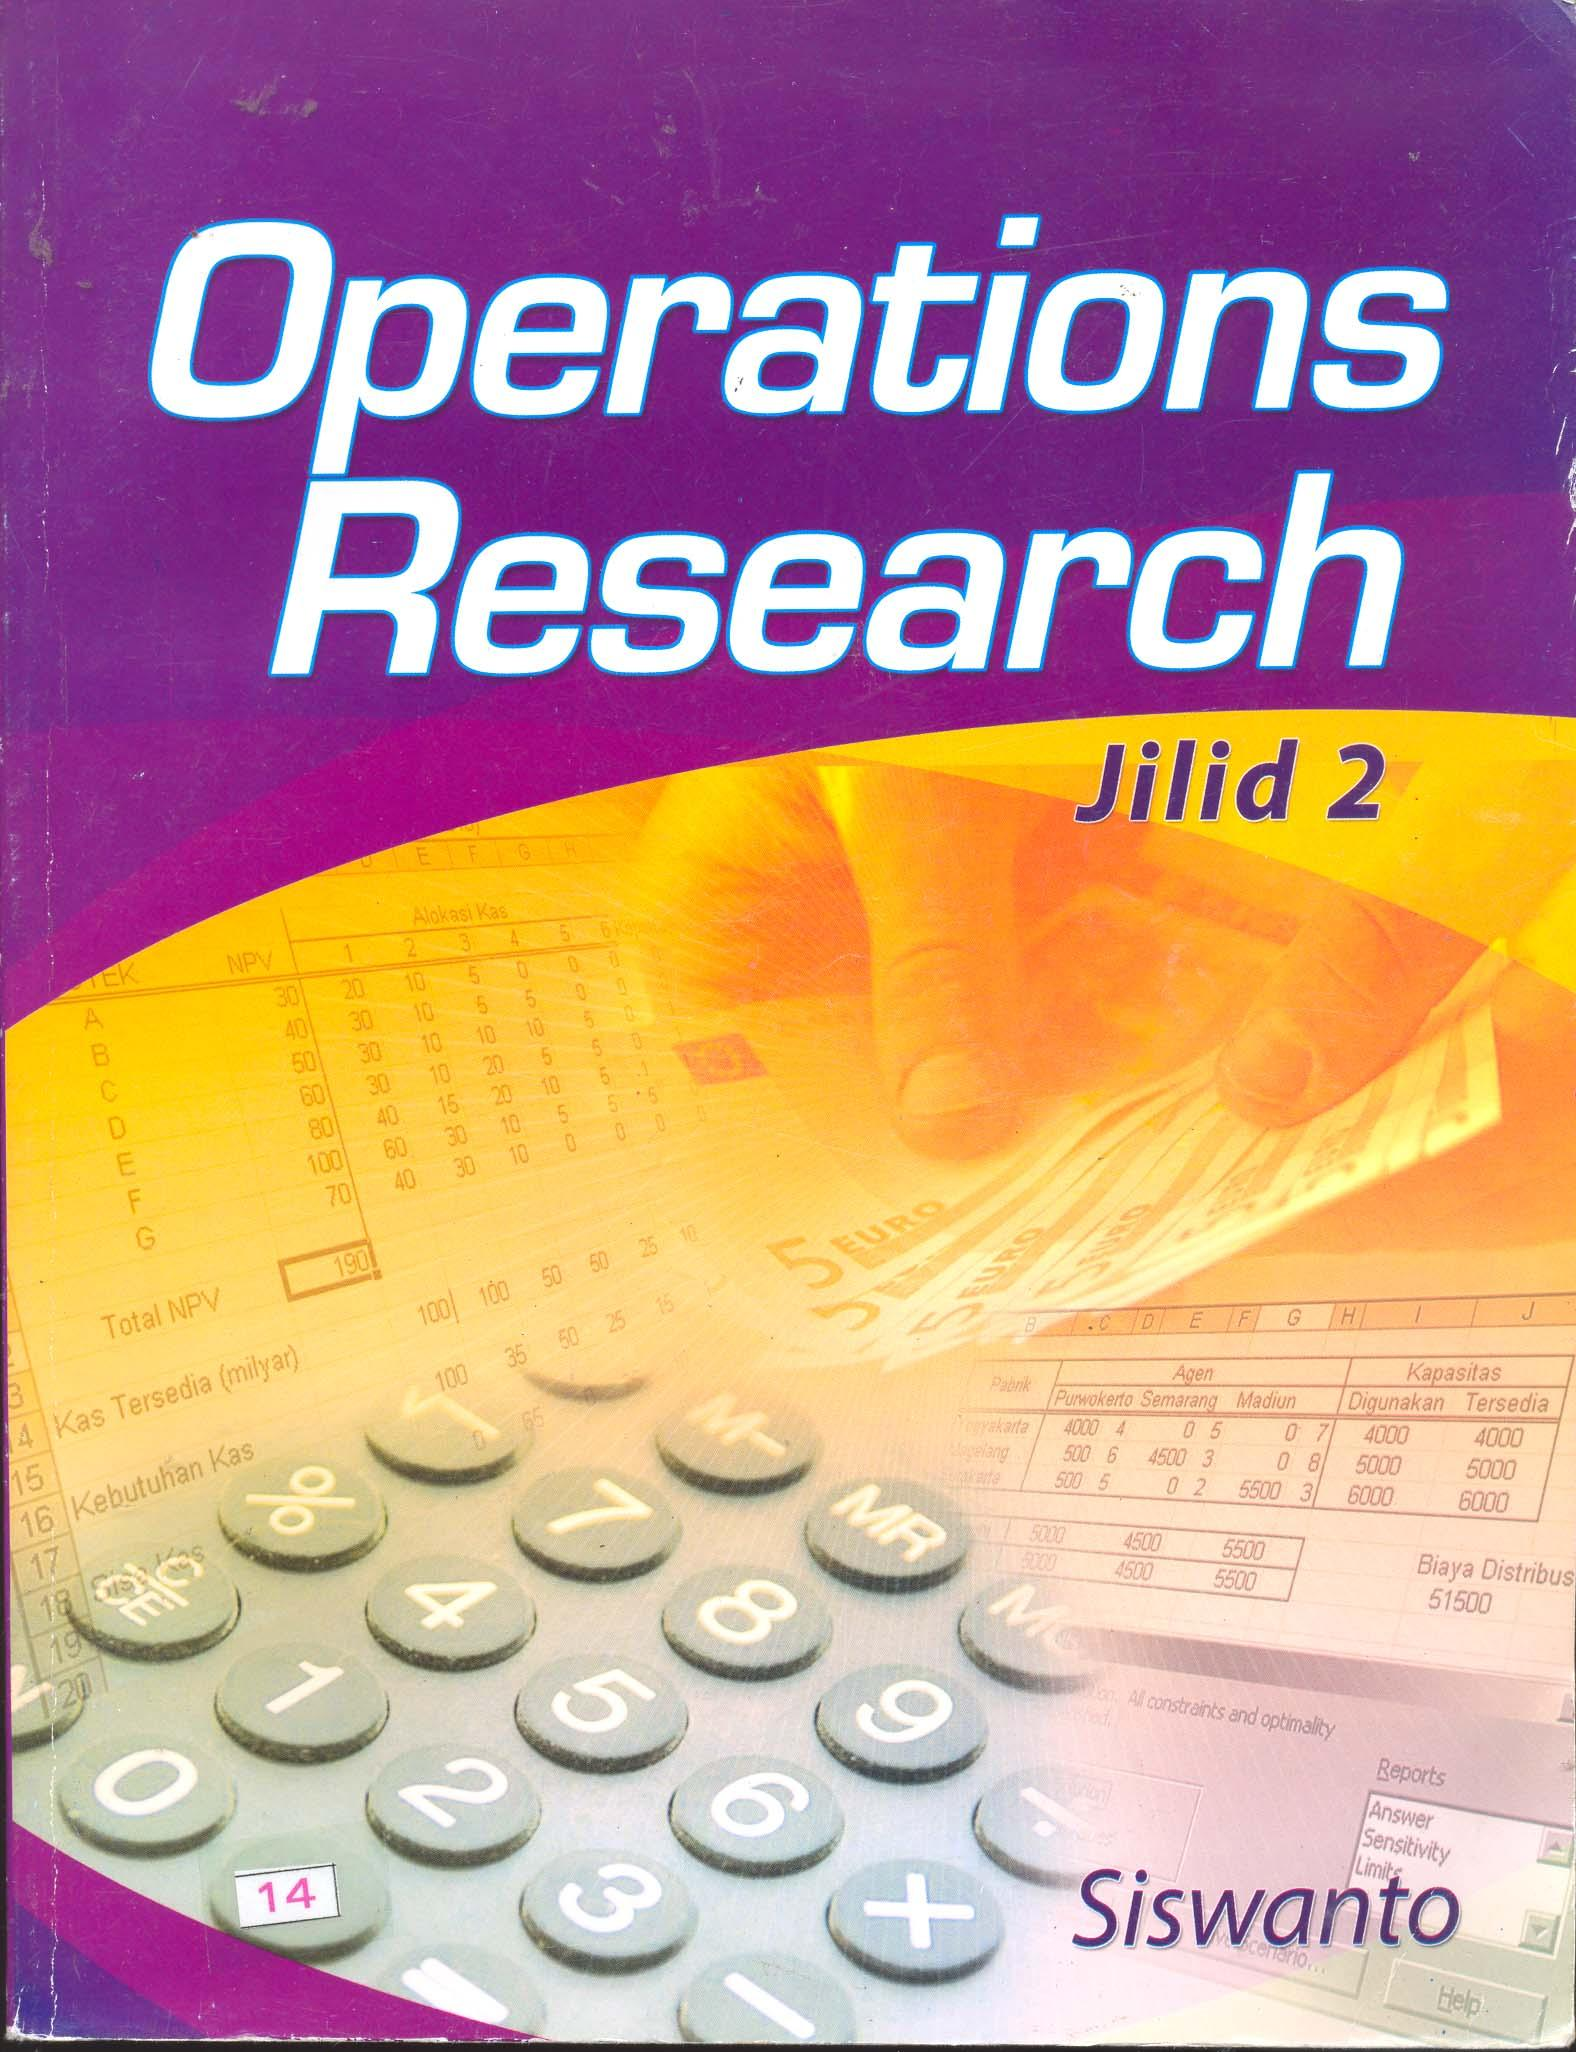 operation research Operation research approach helps in operation management operation management can be defined as the management of systems for providing goods or services, and is concerned with the design and operation of systems for the manufacture, transport, supply or service.